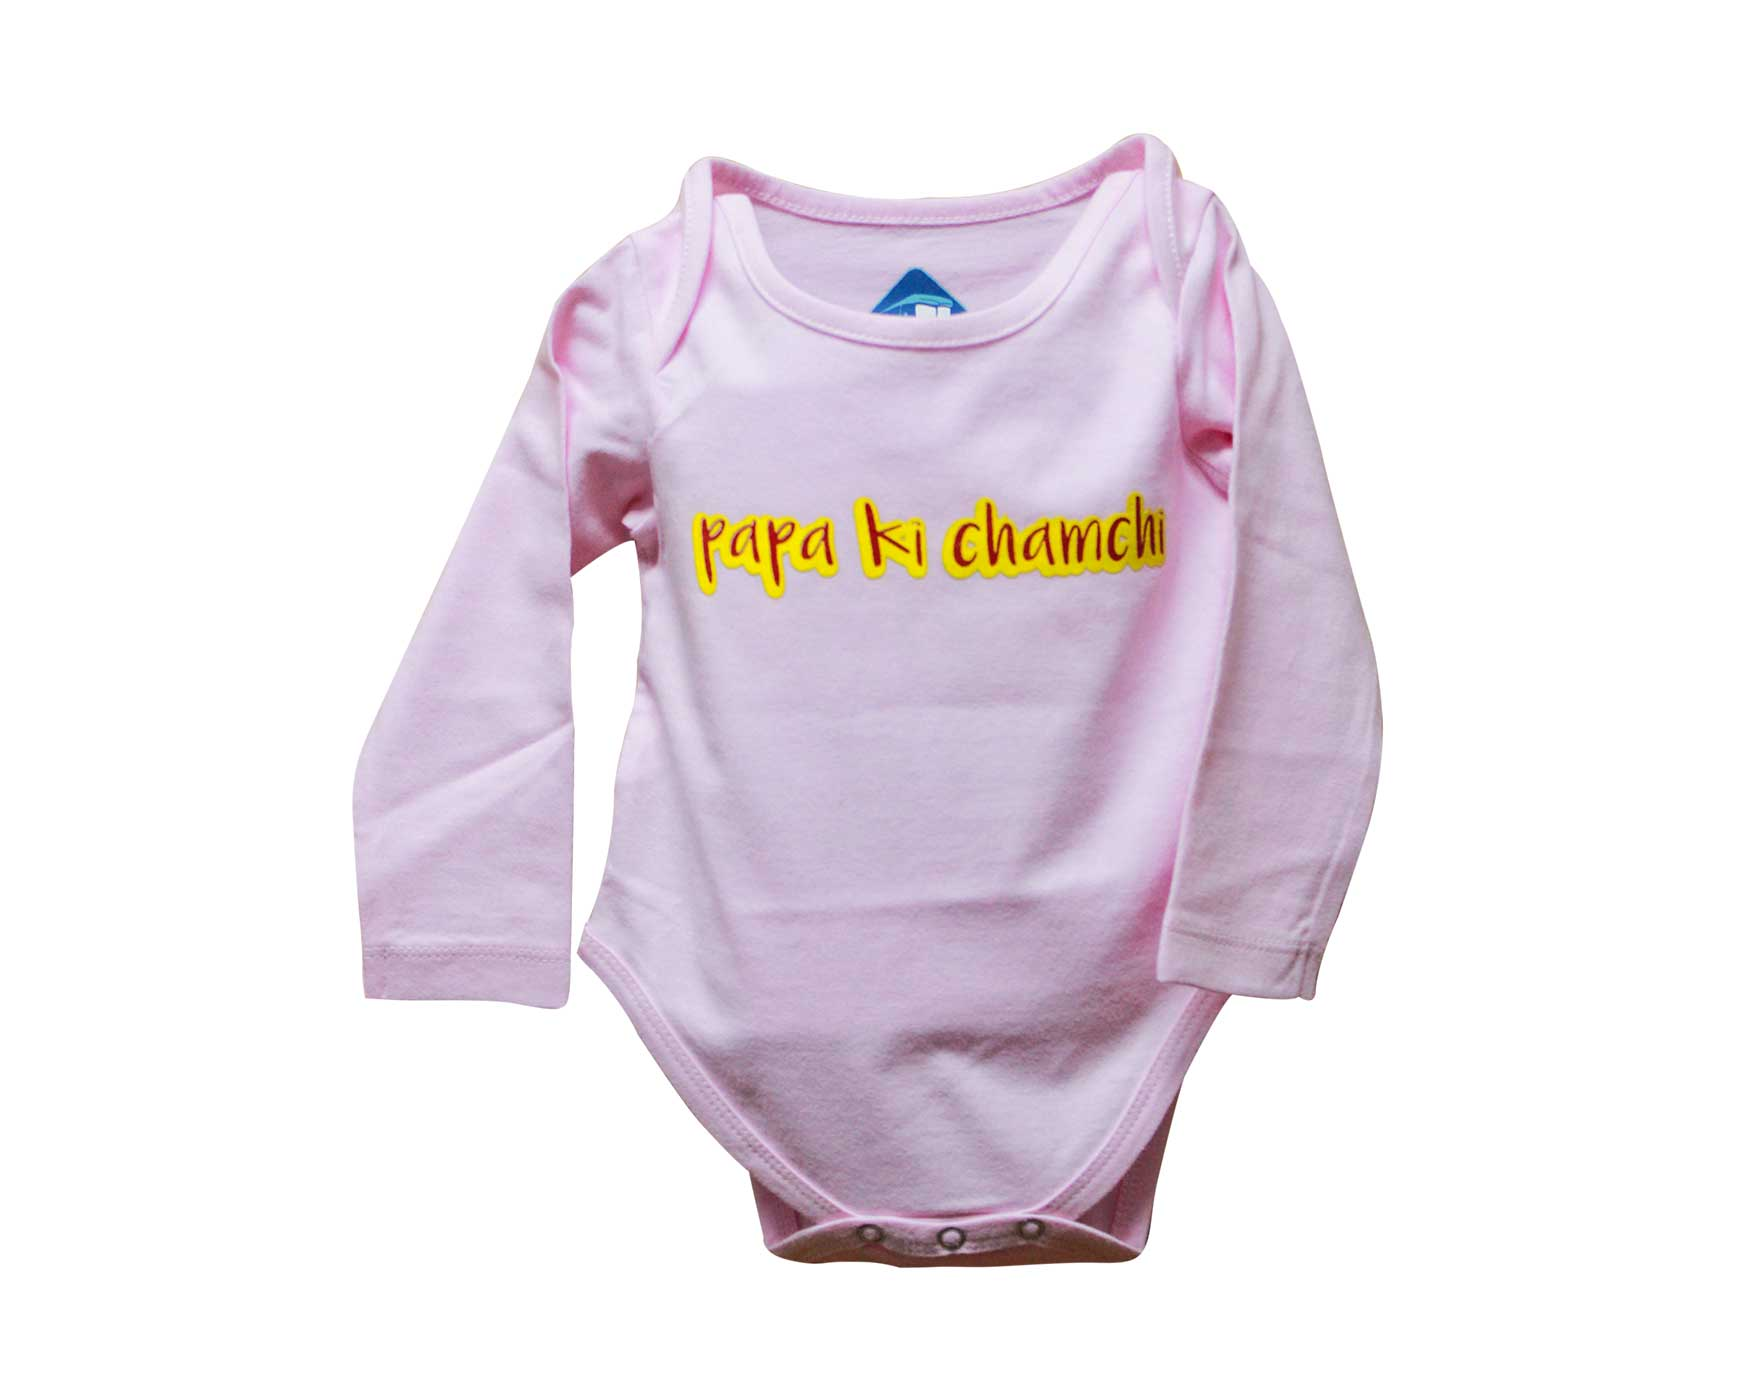 5327cfe7185c papa ki chamchi Baby Girl s Rompers  Buy Keep Calm Baby Boy s ...